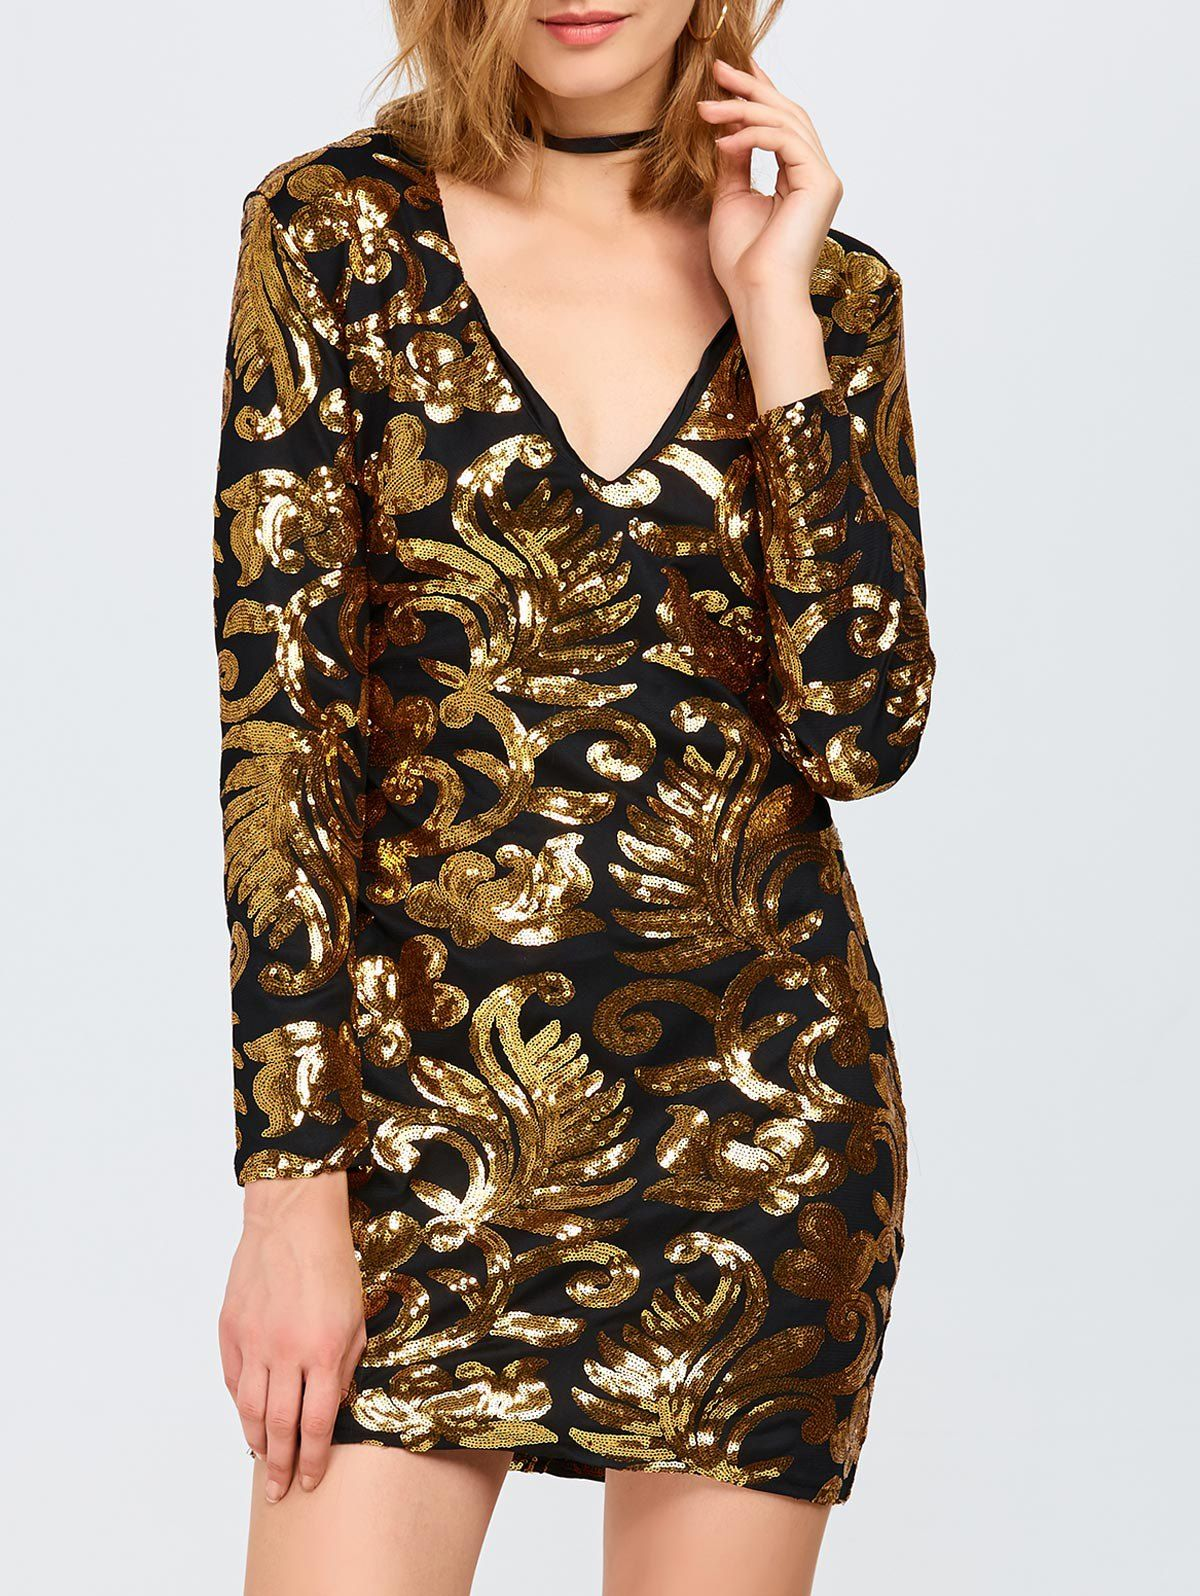 Long sleeve sequined sparkly dress color duo black u gold